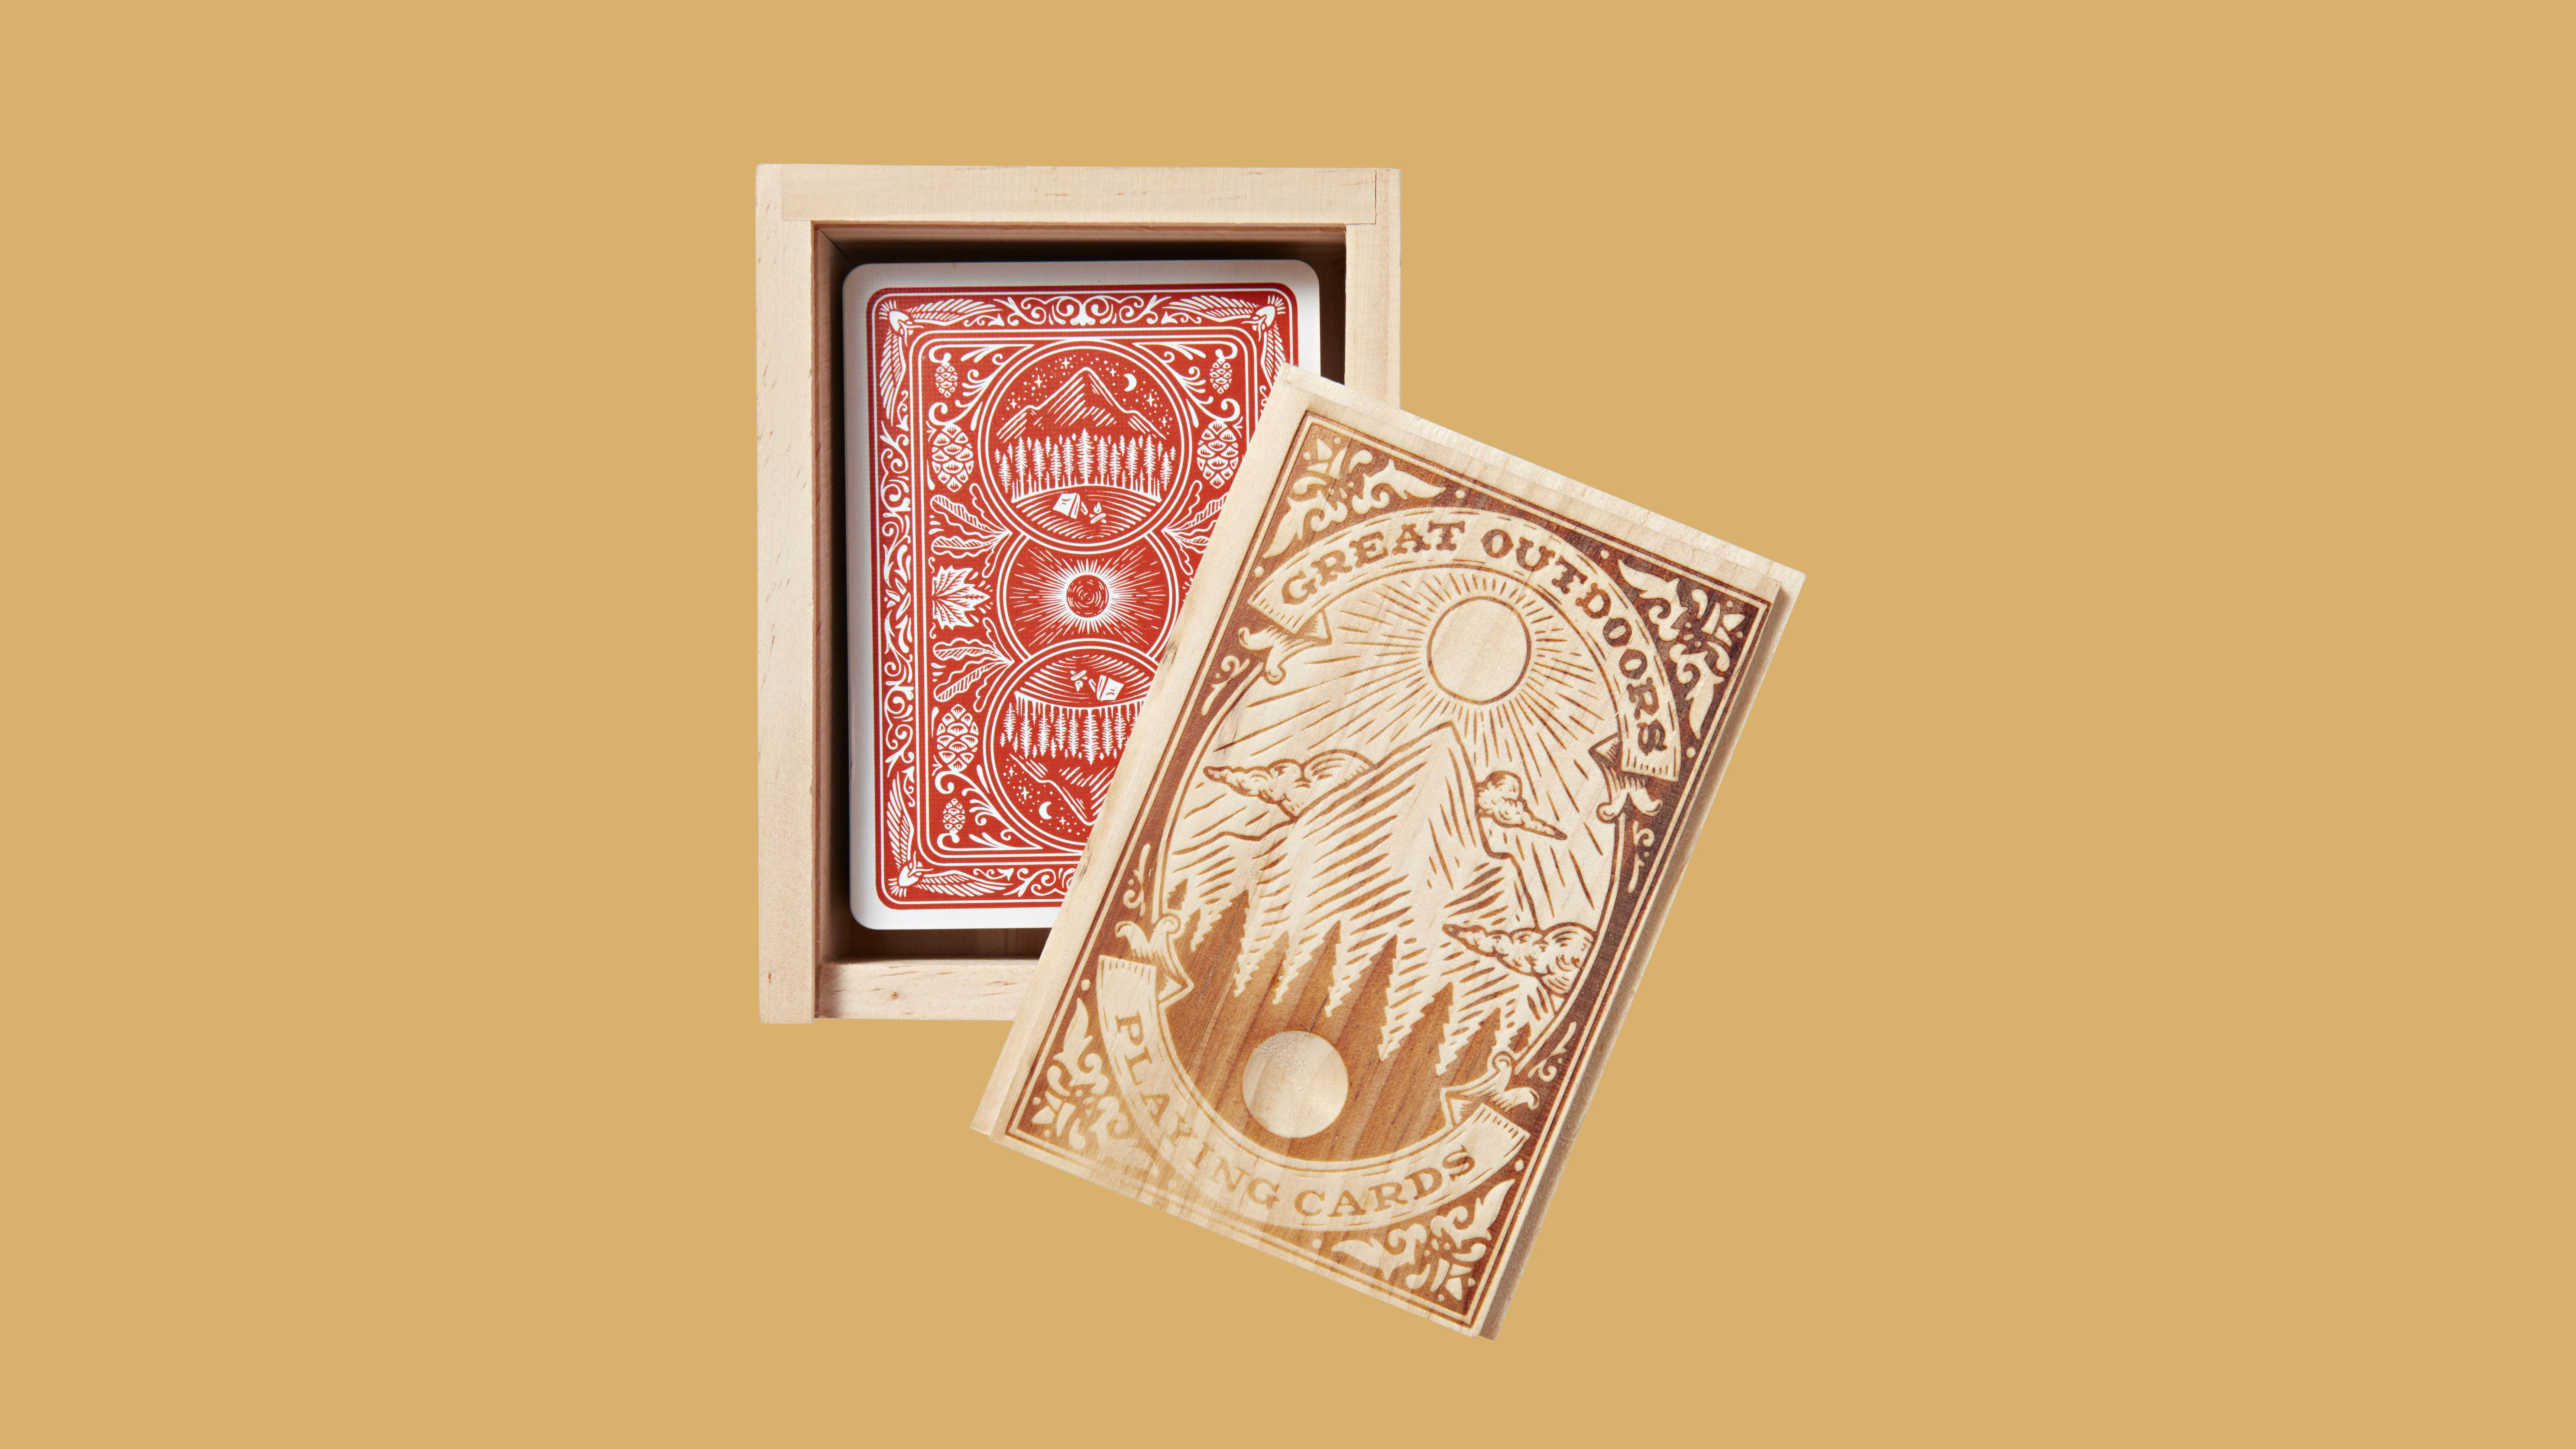 Great Outdoors playing cards in wooden case